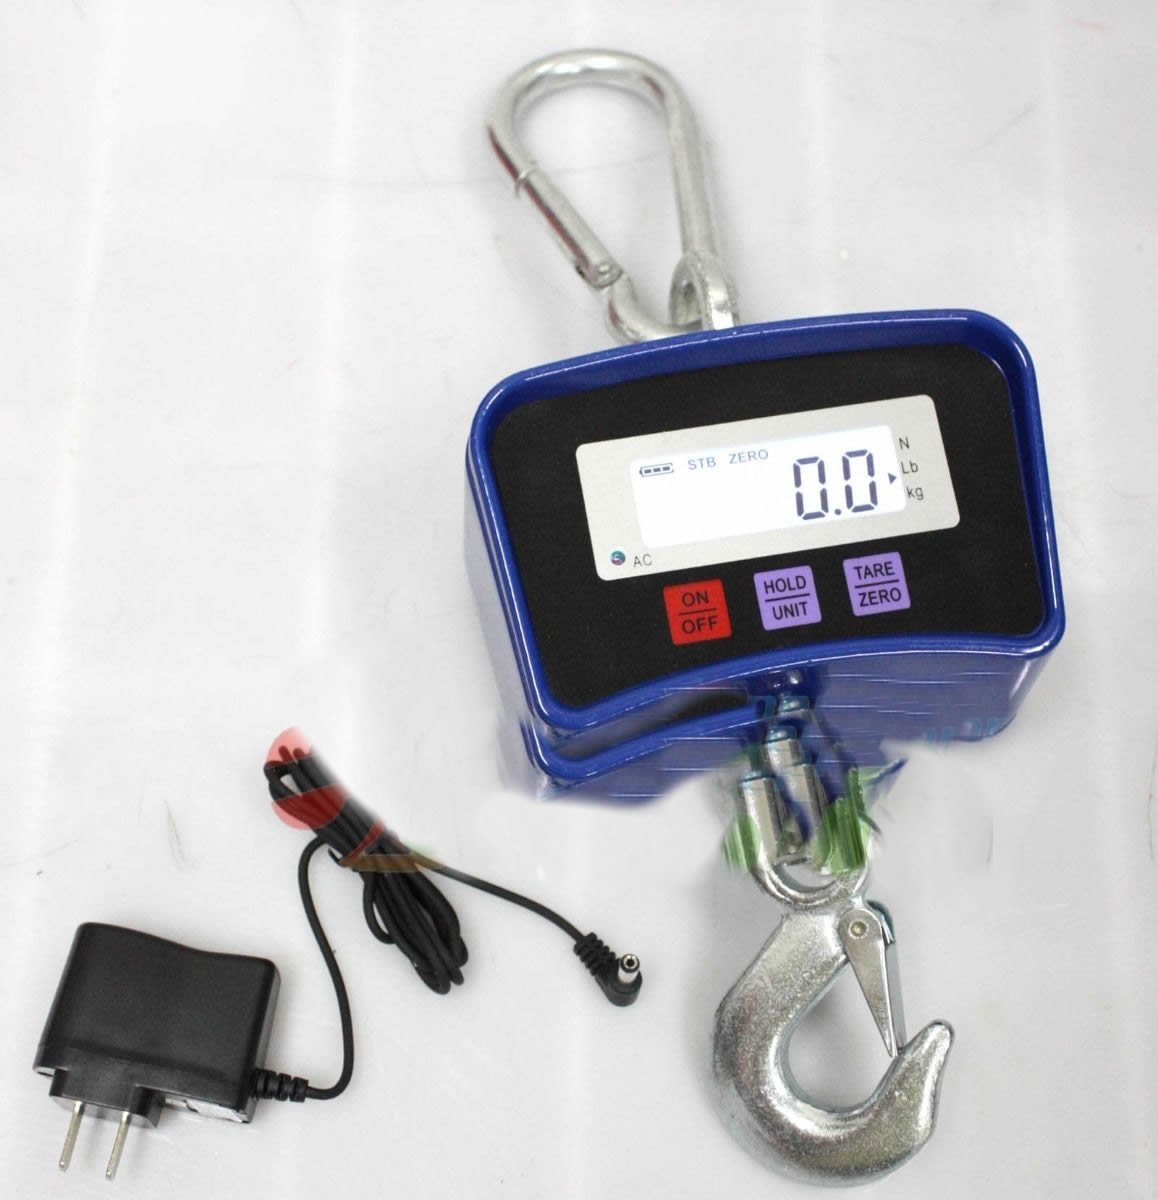 Wanlecy 1000KG 2000LBS Digital Crane Scale Industrial 1T Heavy Duty Hanging Scale High Precision LED Display with Remote